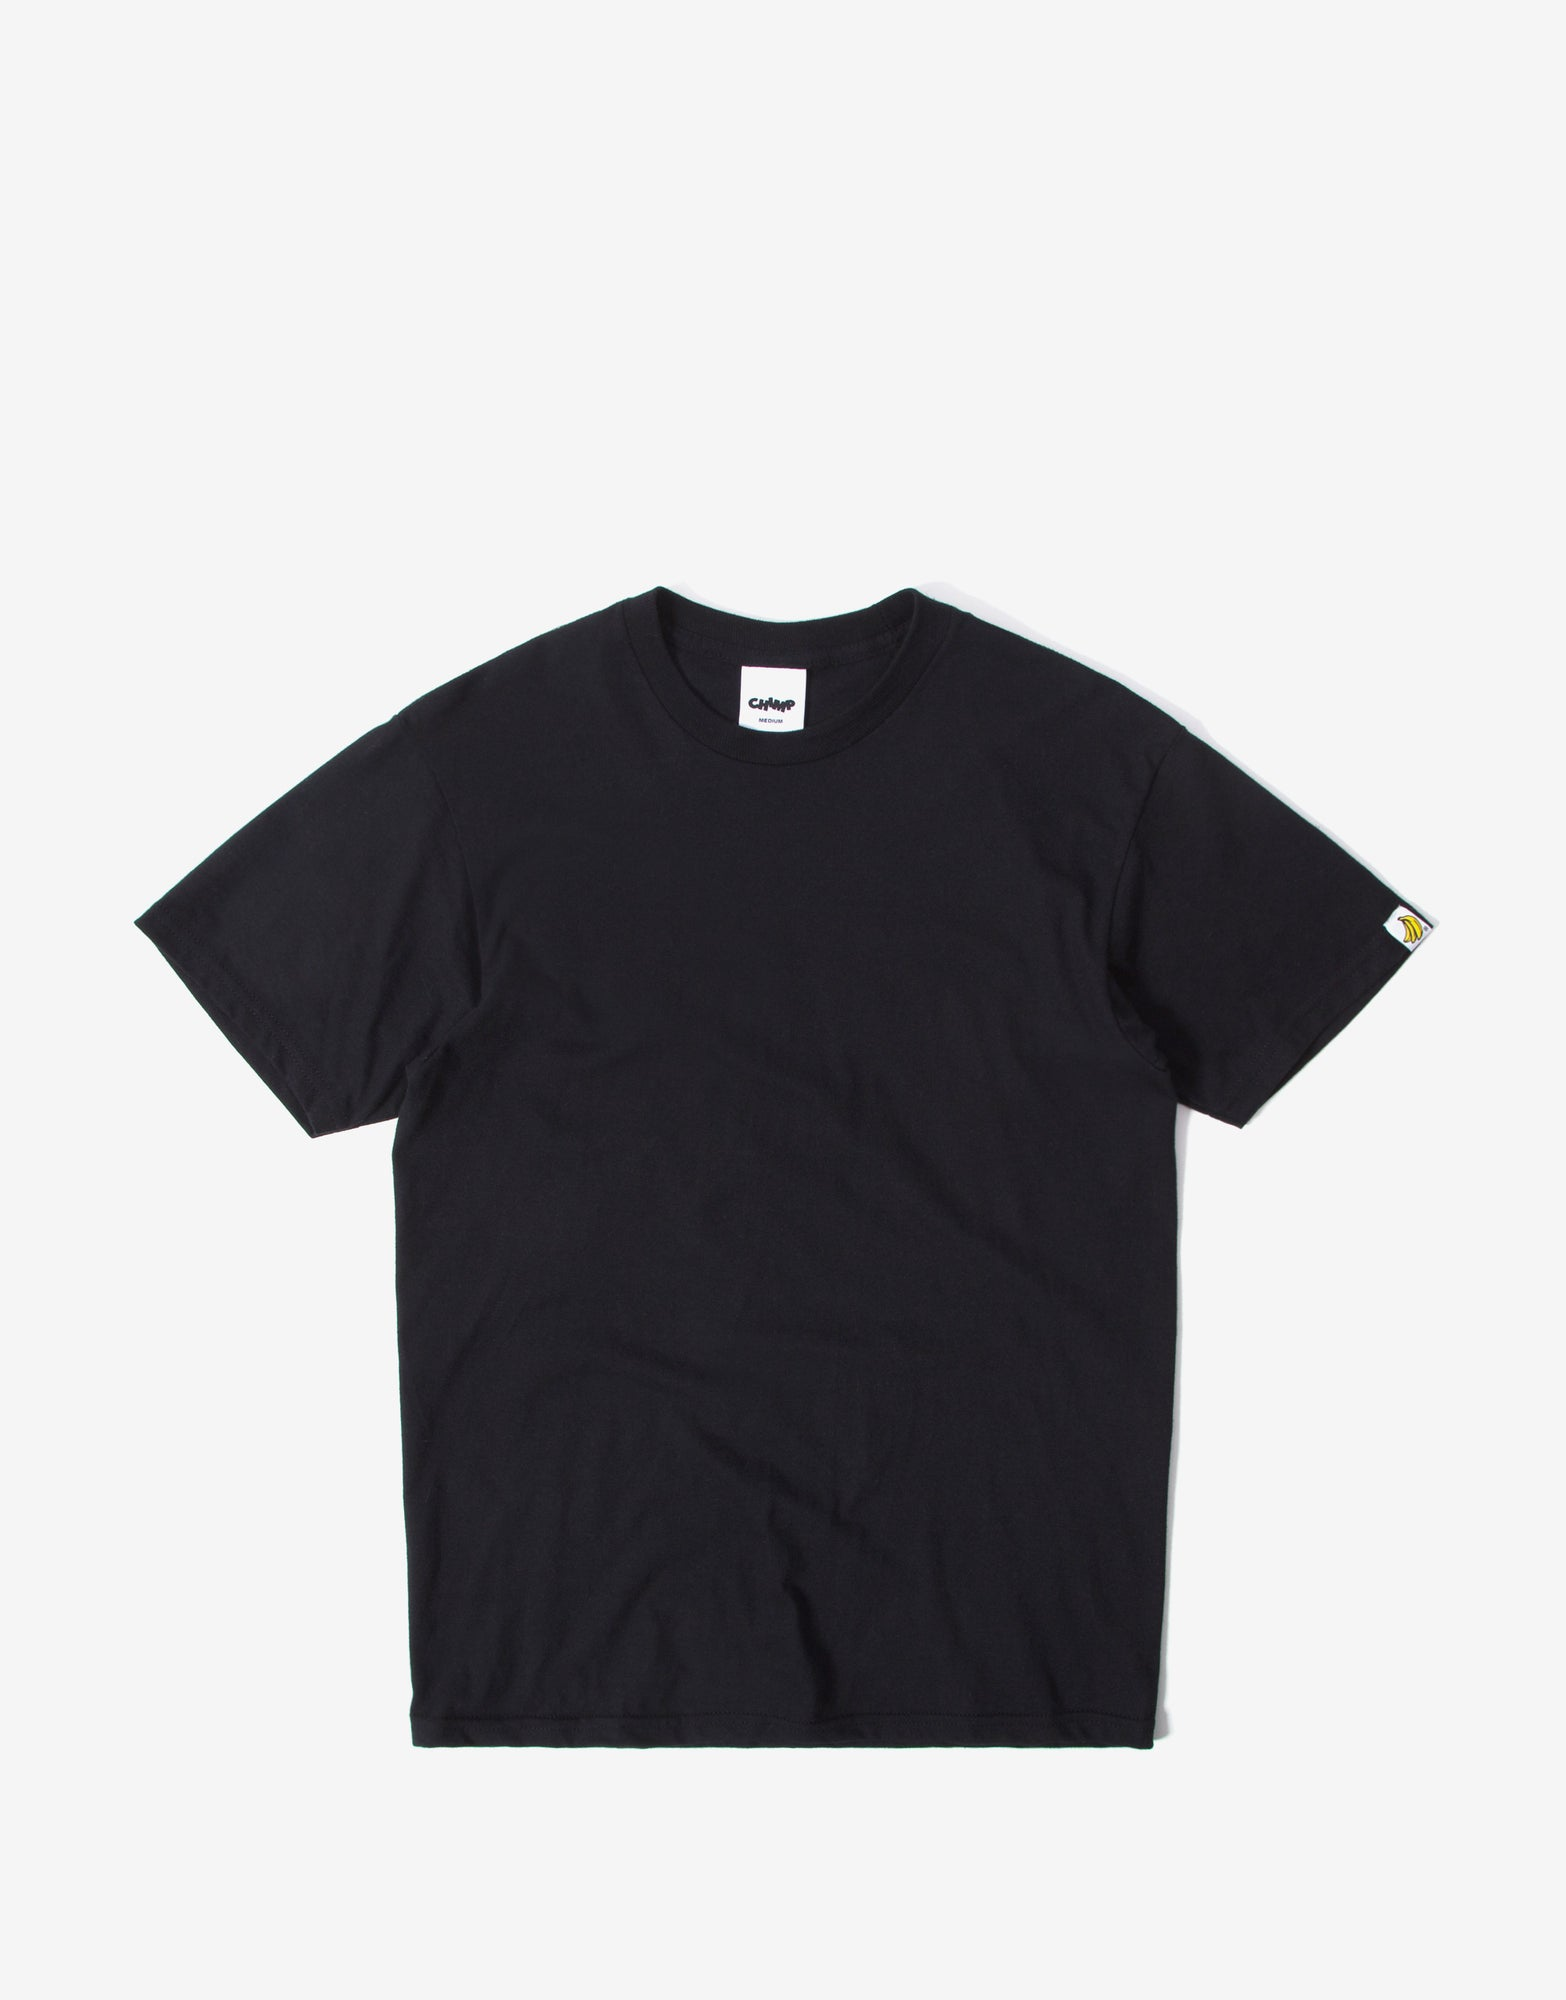 Chimp Heavyweight Premium Basic T Shirt - Black